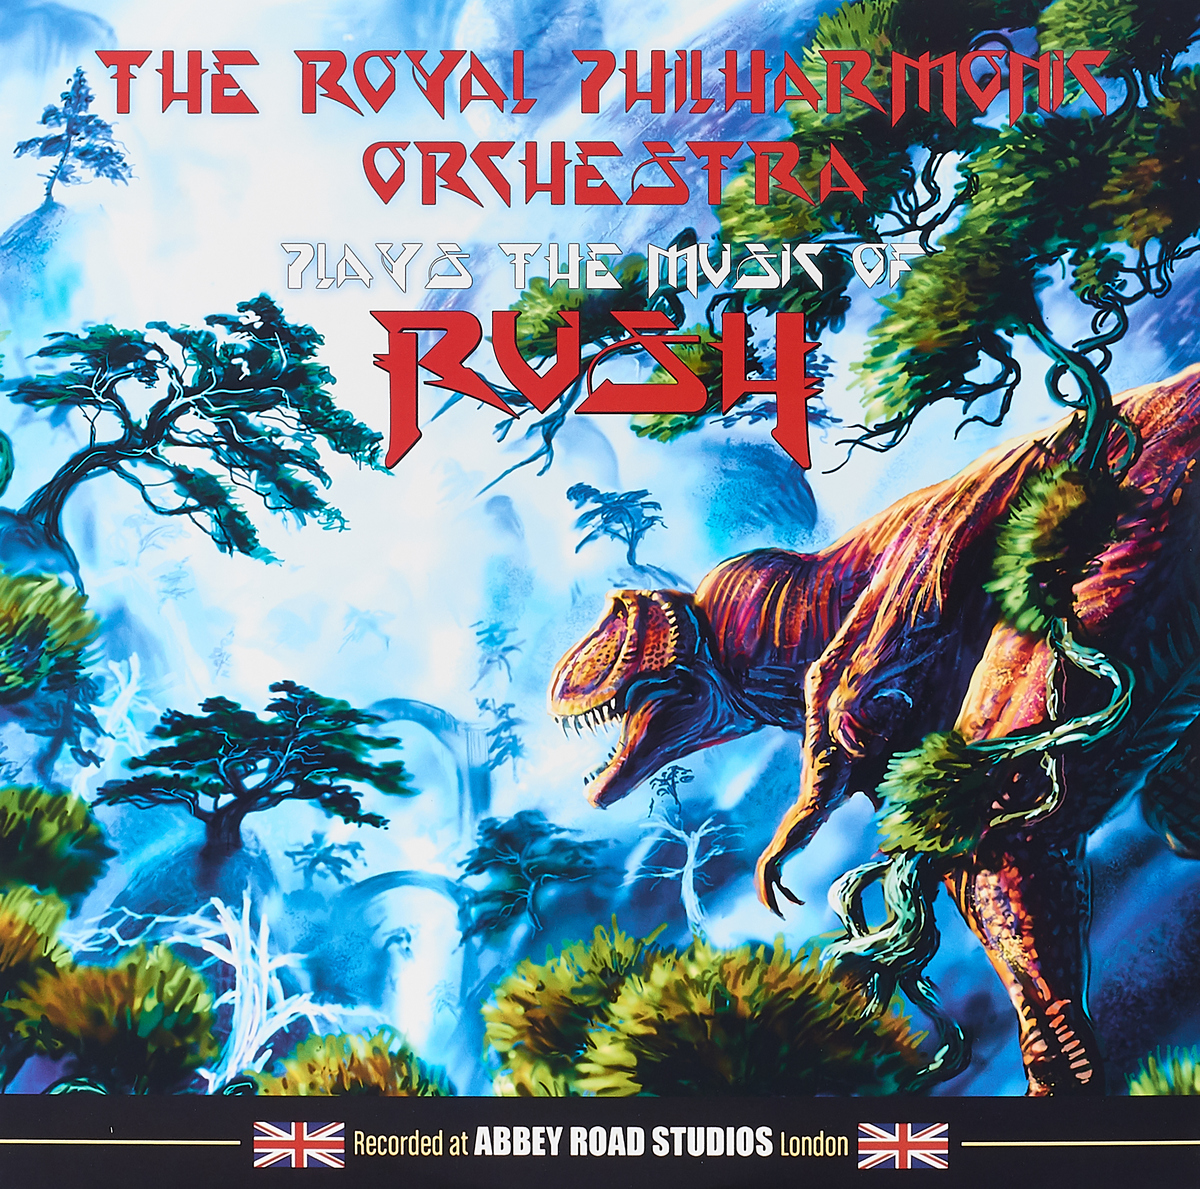 The Royal Philharmonic Orchestra The Royal Philharmonic Orchestra. Plays The Music Of Rush (LP) игорь стравинский igor stravinsky czech philharmonic orchestra conductor karel ancerl le sacre du printemps the rite of spring lp